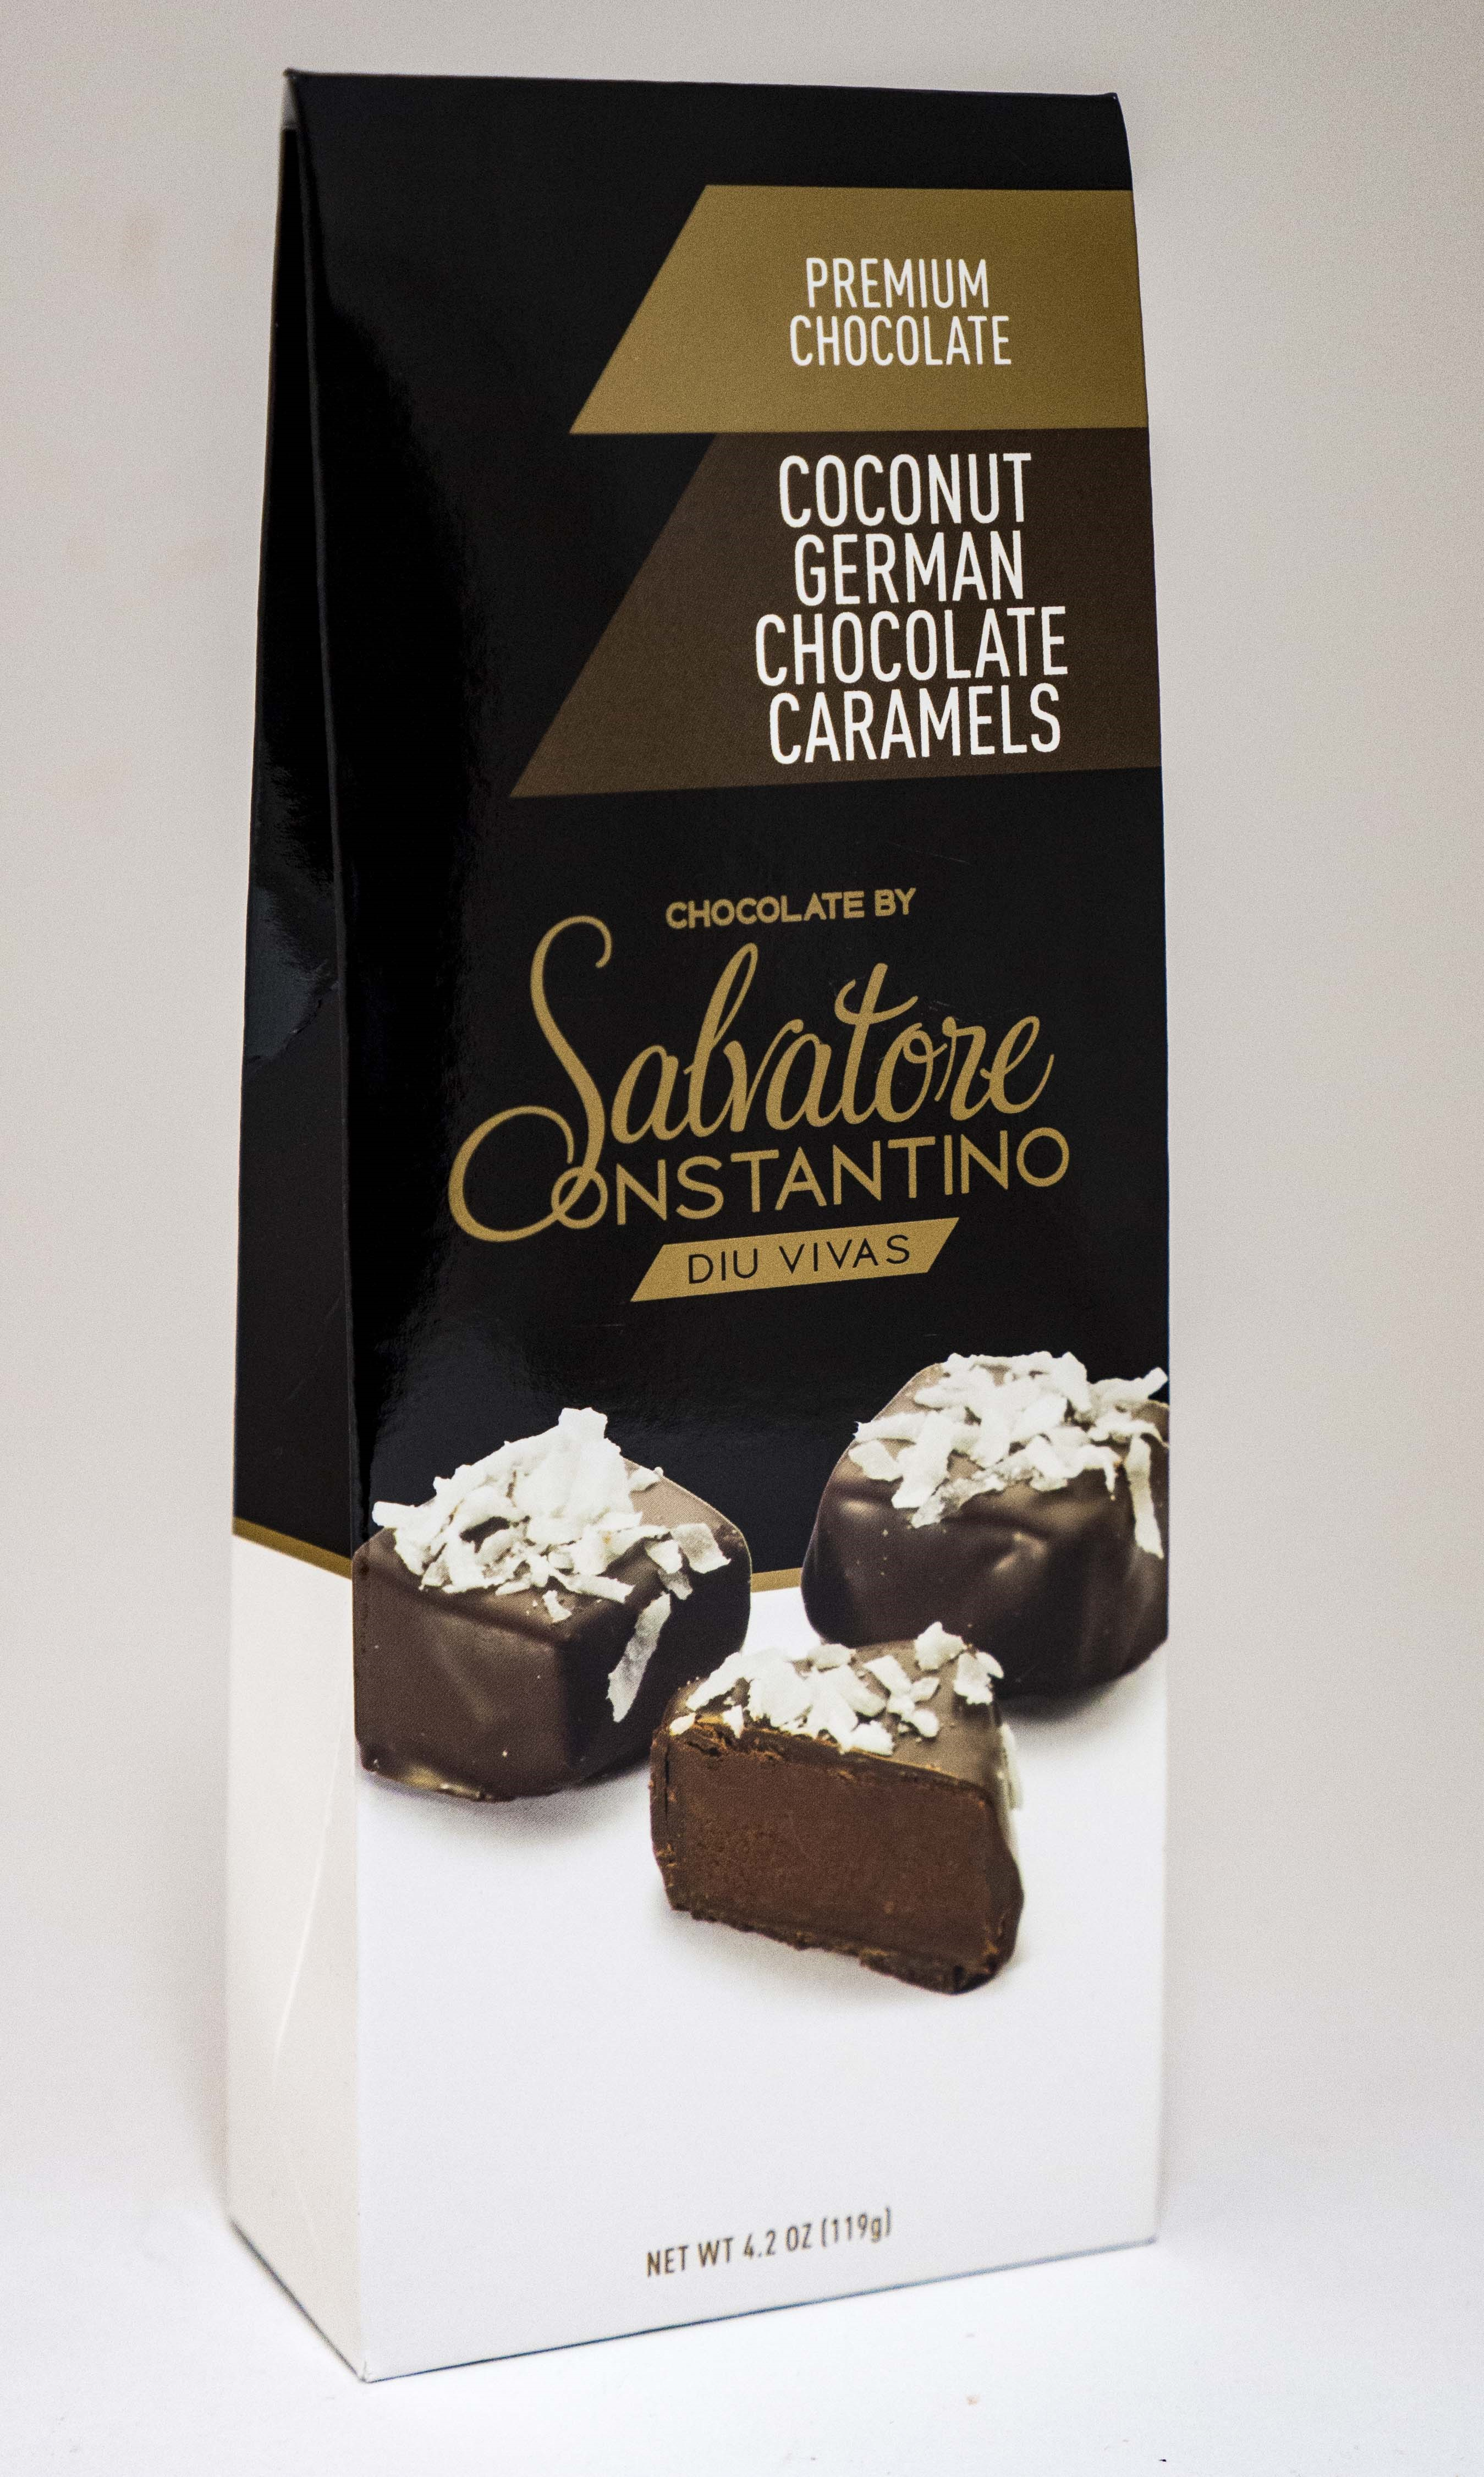 Salvatore Constantino Caramels, Coconut German Chocolate, 4.2 Oz by SSI G. Debbas Chocolatier, LLC